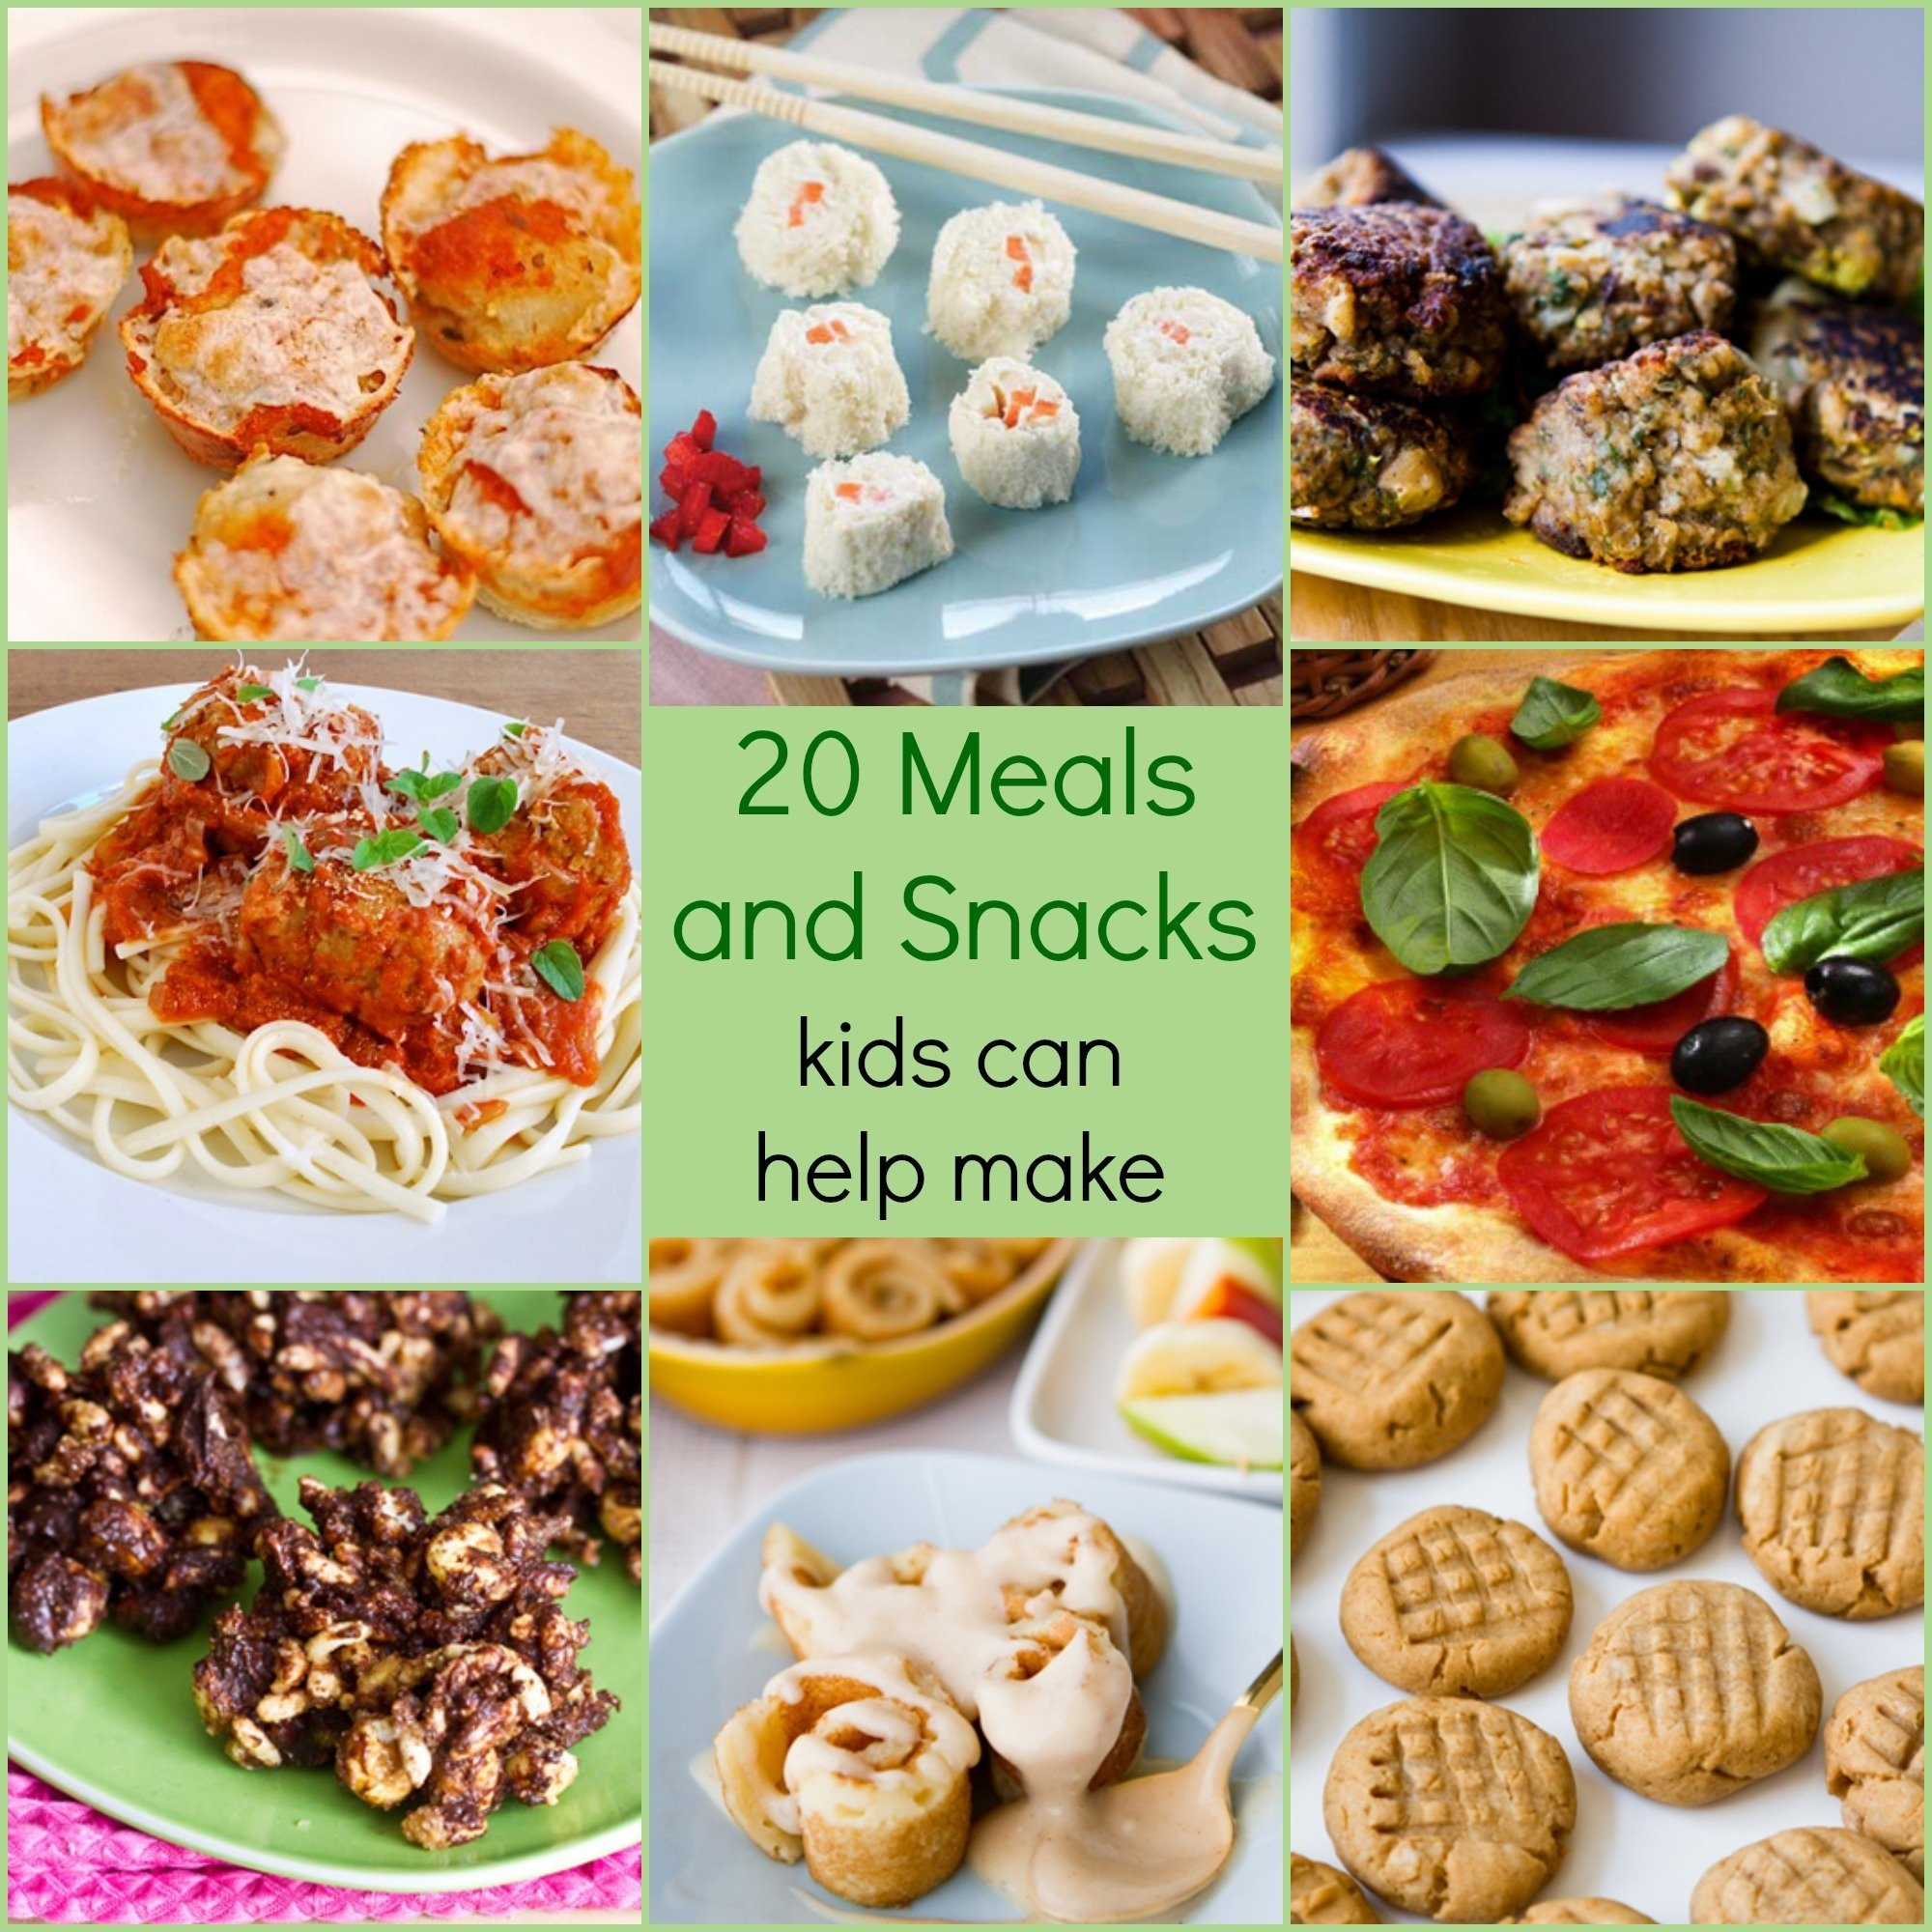 10 Lovable Easy Meal Ideas For Kids 20 meals and snacks kids can help make 1 2020